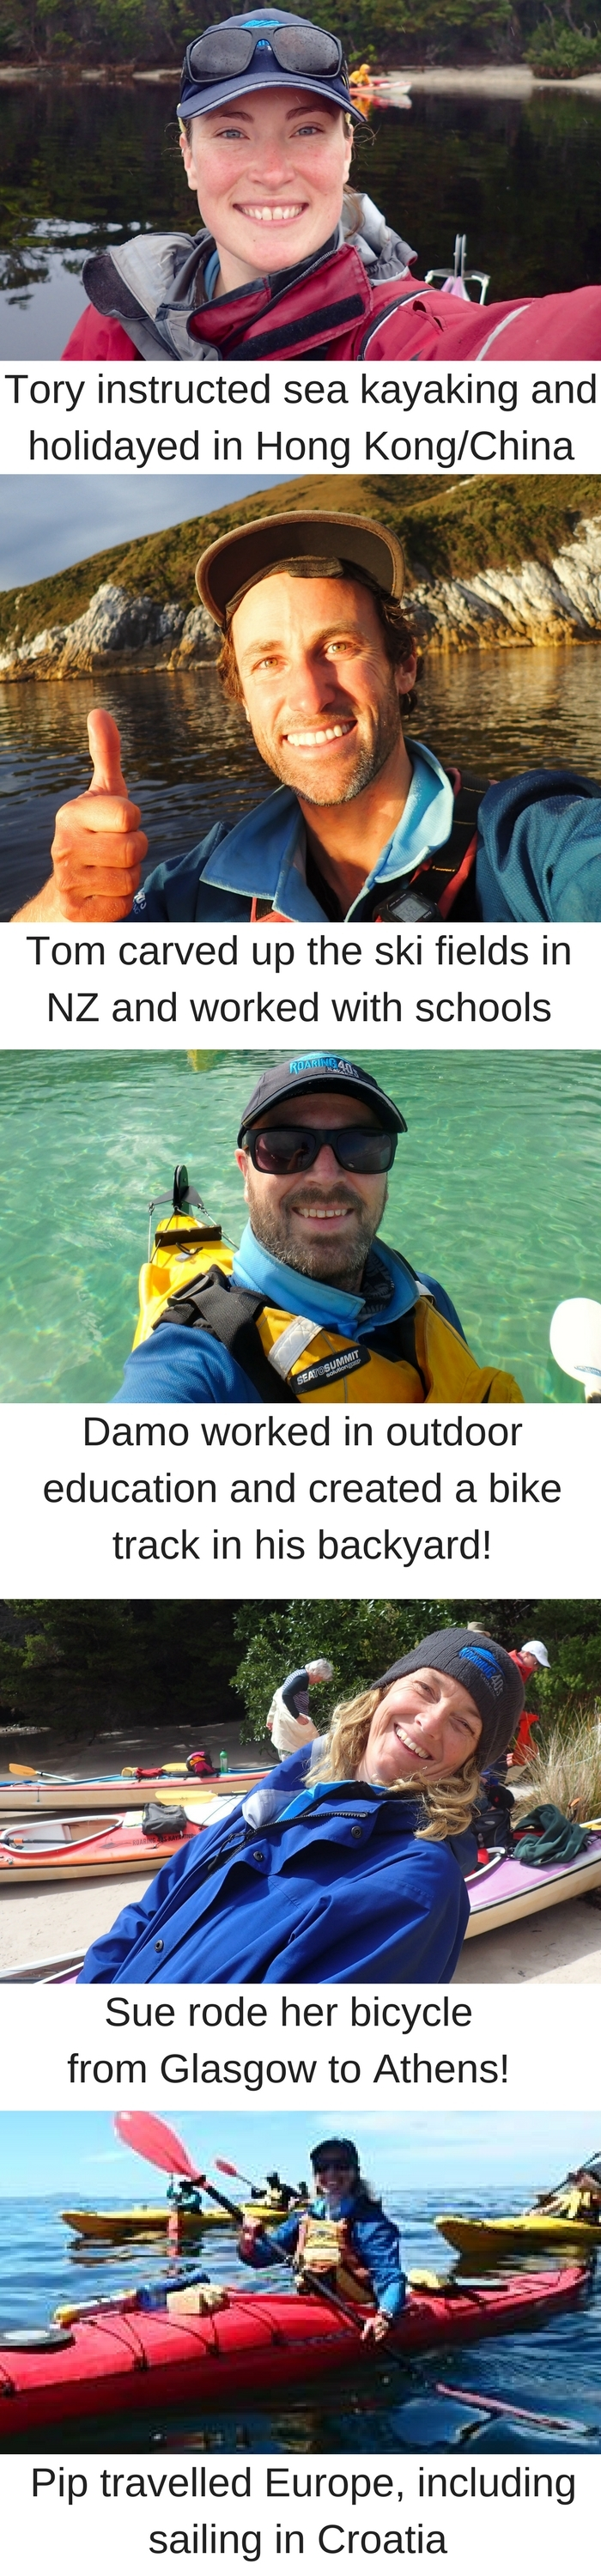 Tory has been instructing sea kayaking and is currently holidaying in Hong Kon. 2